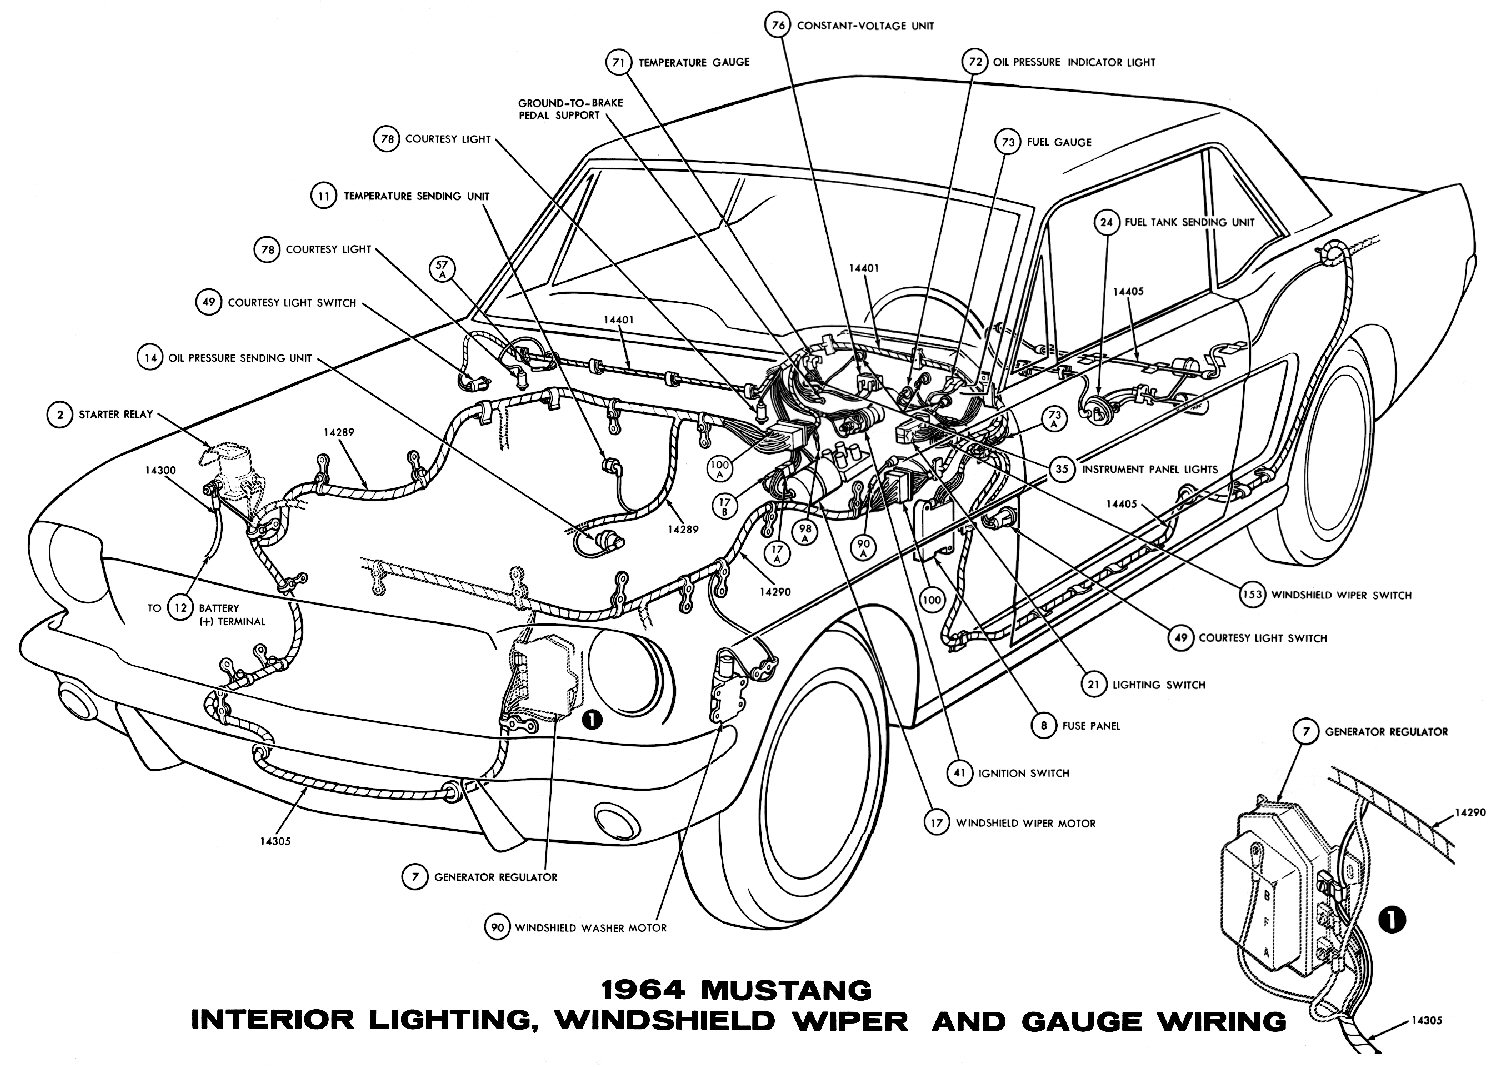 mustang engine parts diagram 1964 mustang wiring diagrams average joe restoration 1964 mustang interior lights windshield wiper and gauges pictorial